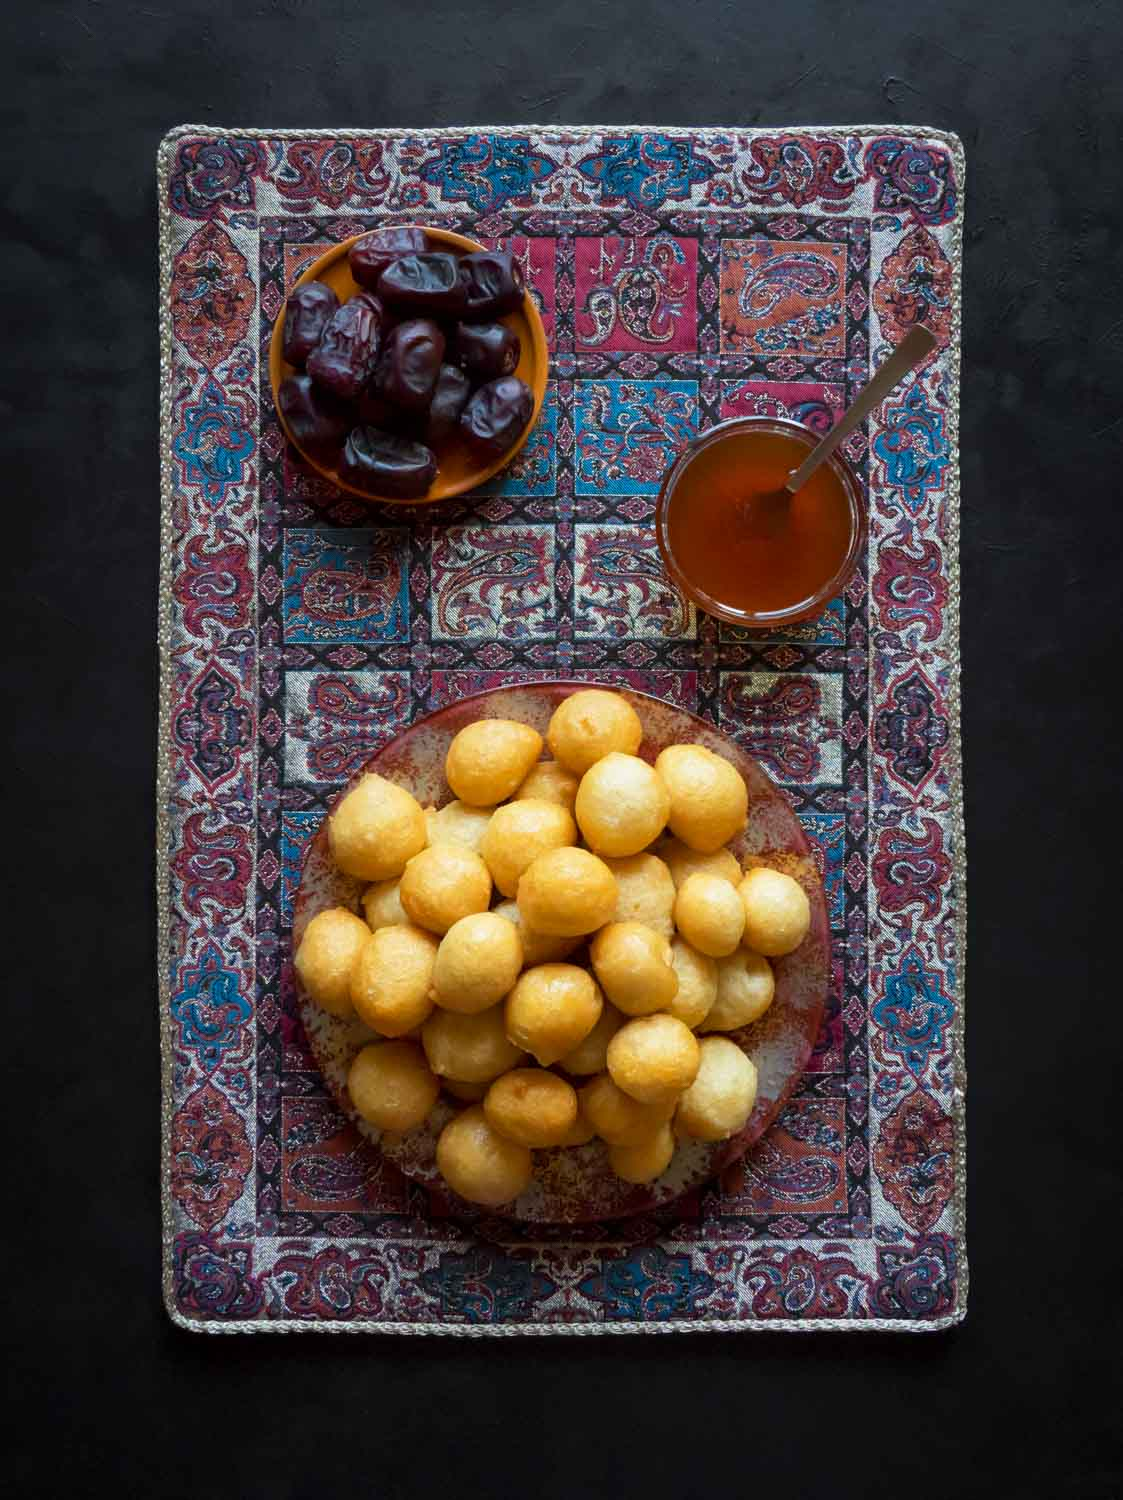 Luqaimat - traditional sweet dumplings of UAE. Sweet Ramadan food dumplings.